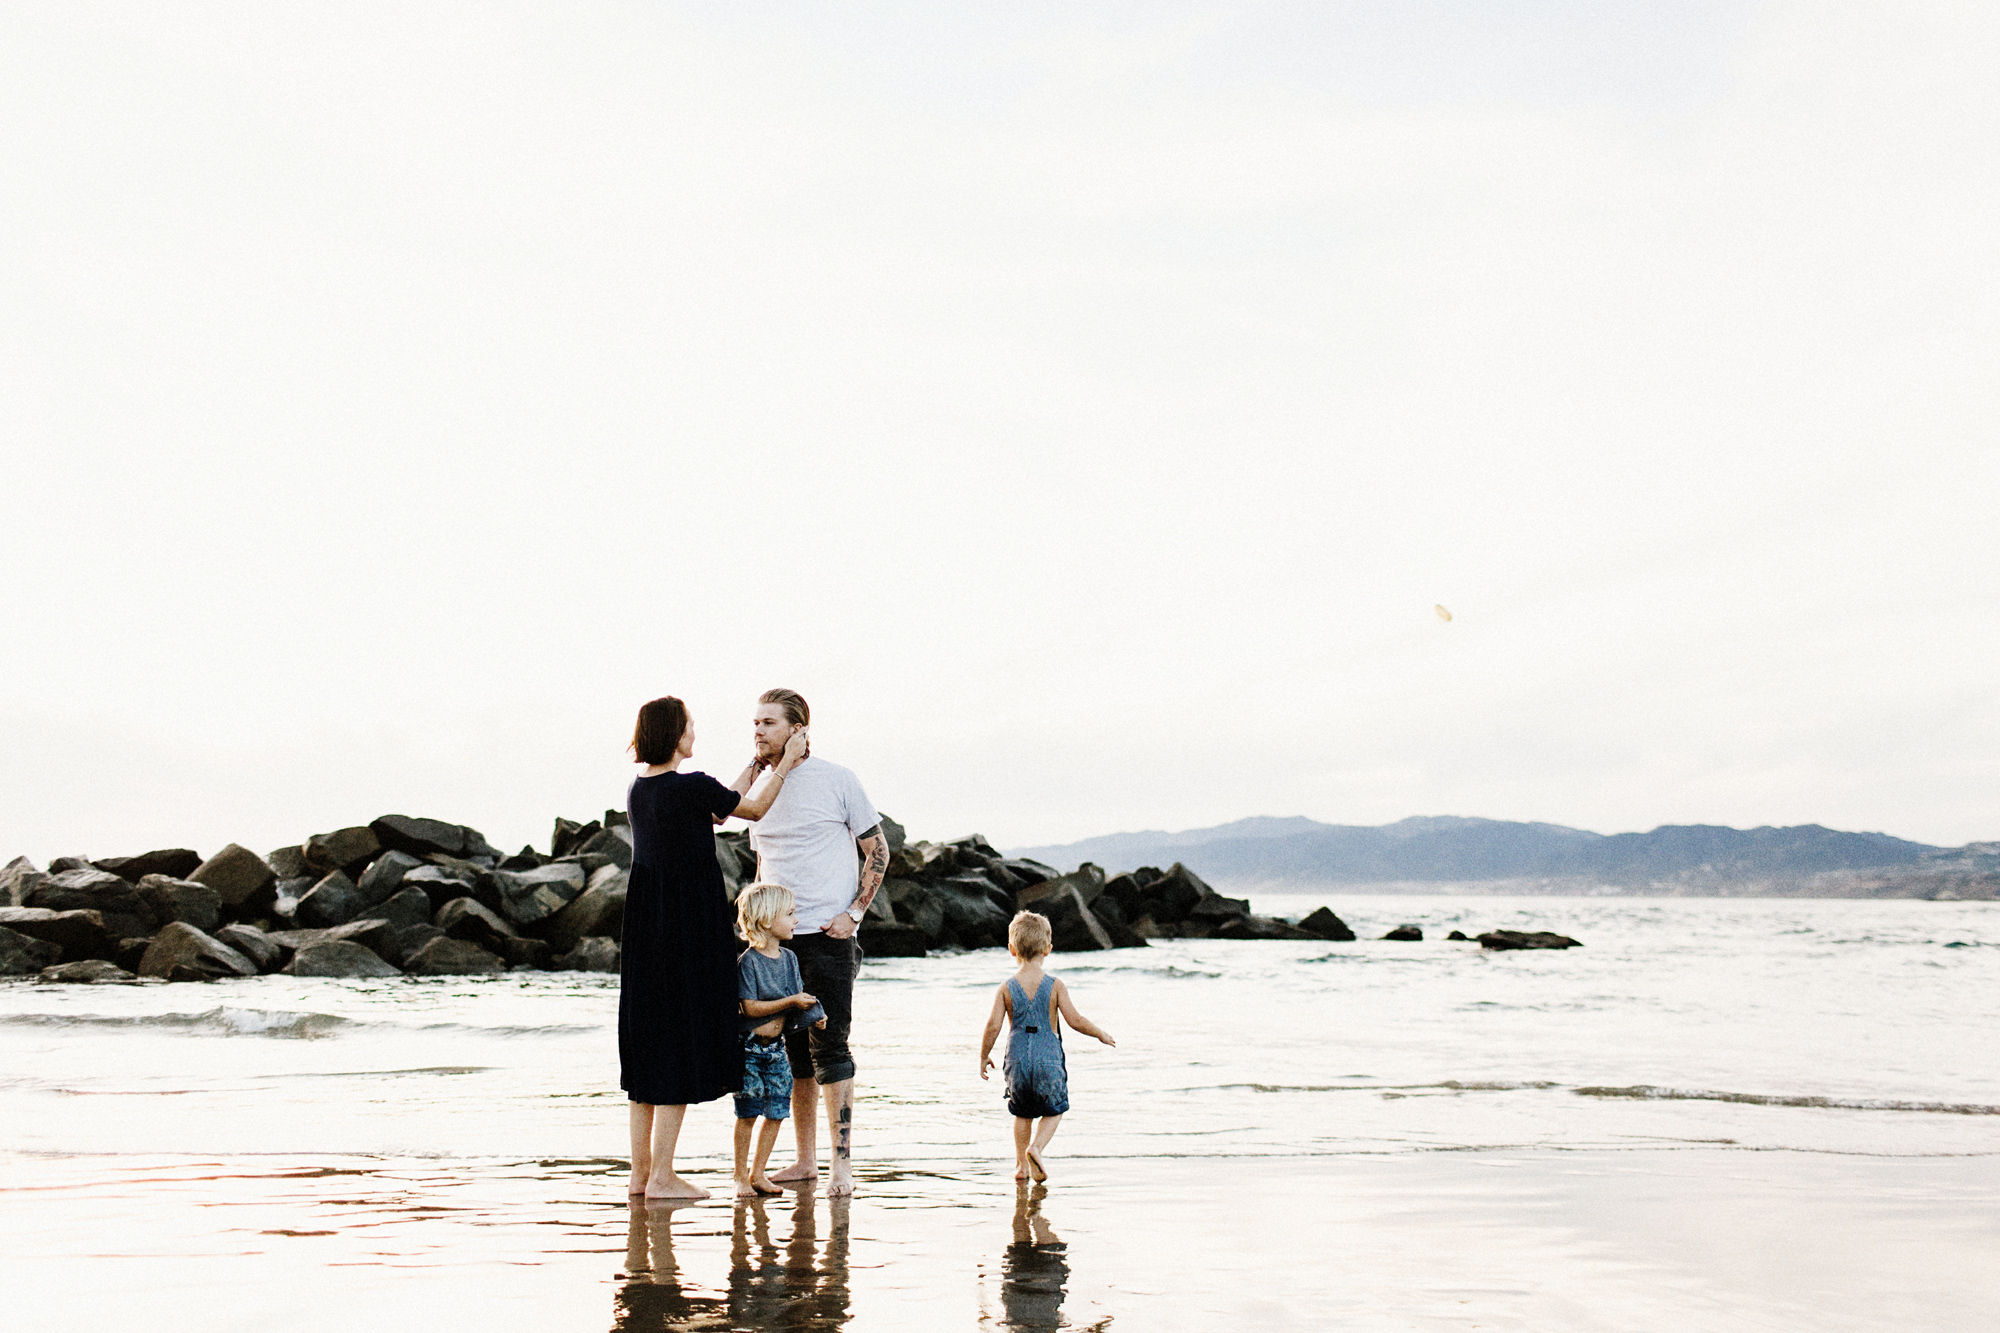 011-family-in-venice-beach.jpg